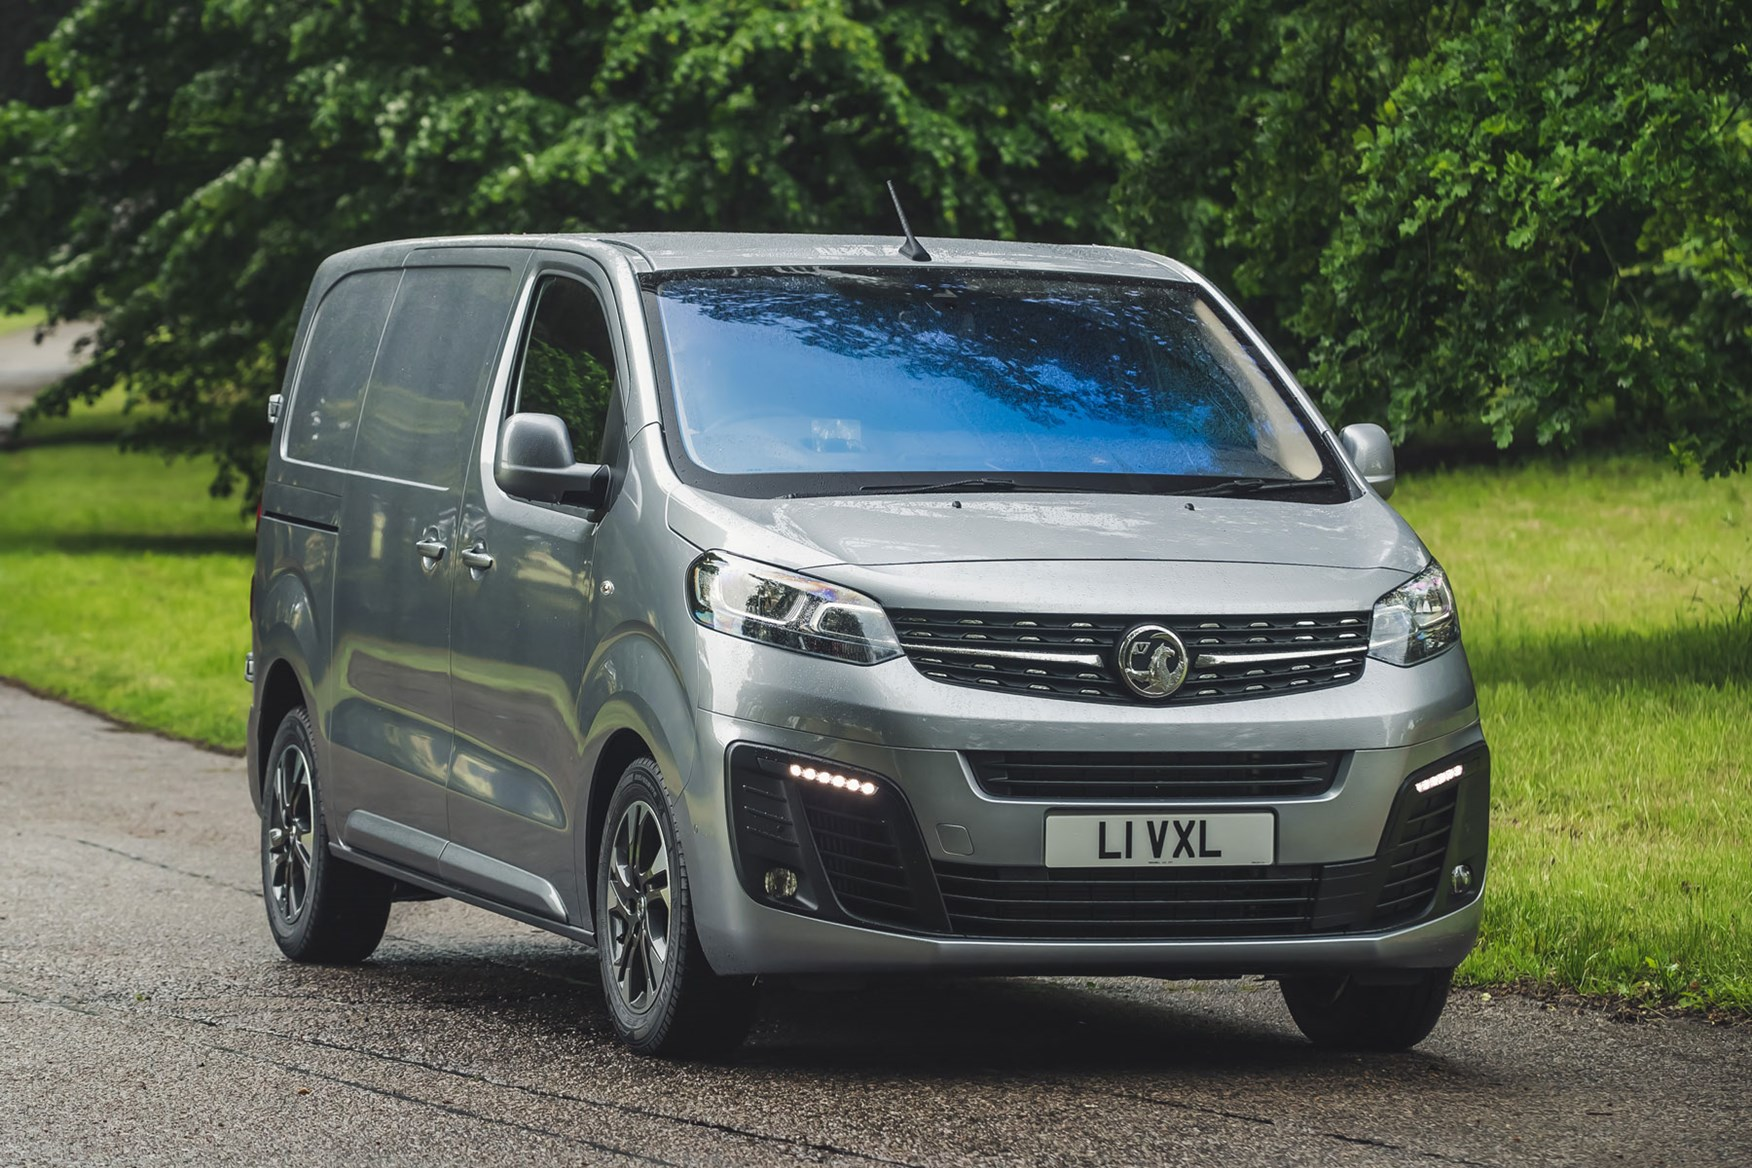 Vauxhall Vivaro review - front view, driving, silver